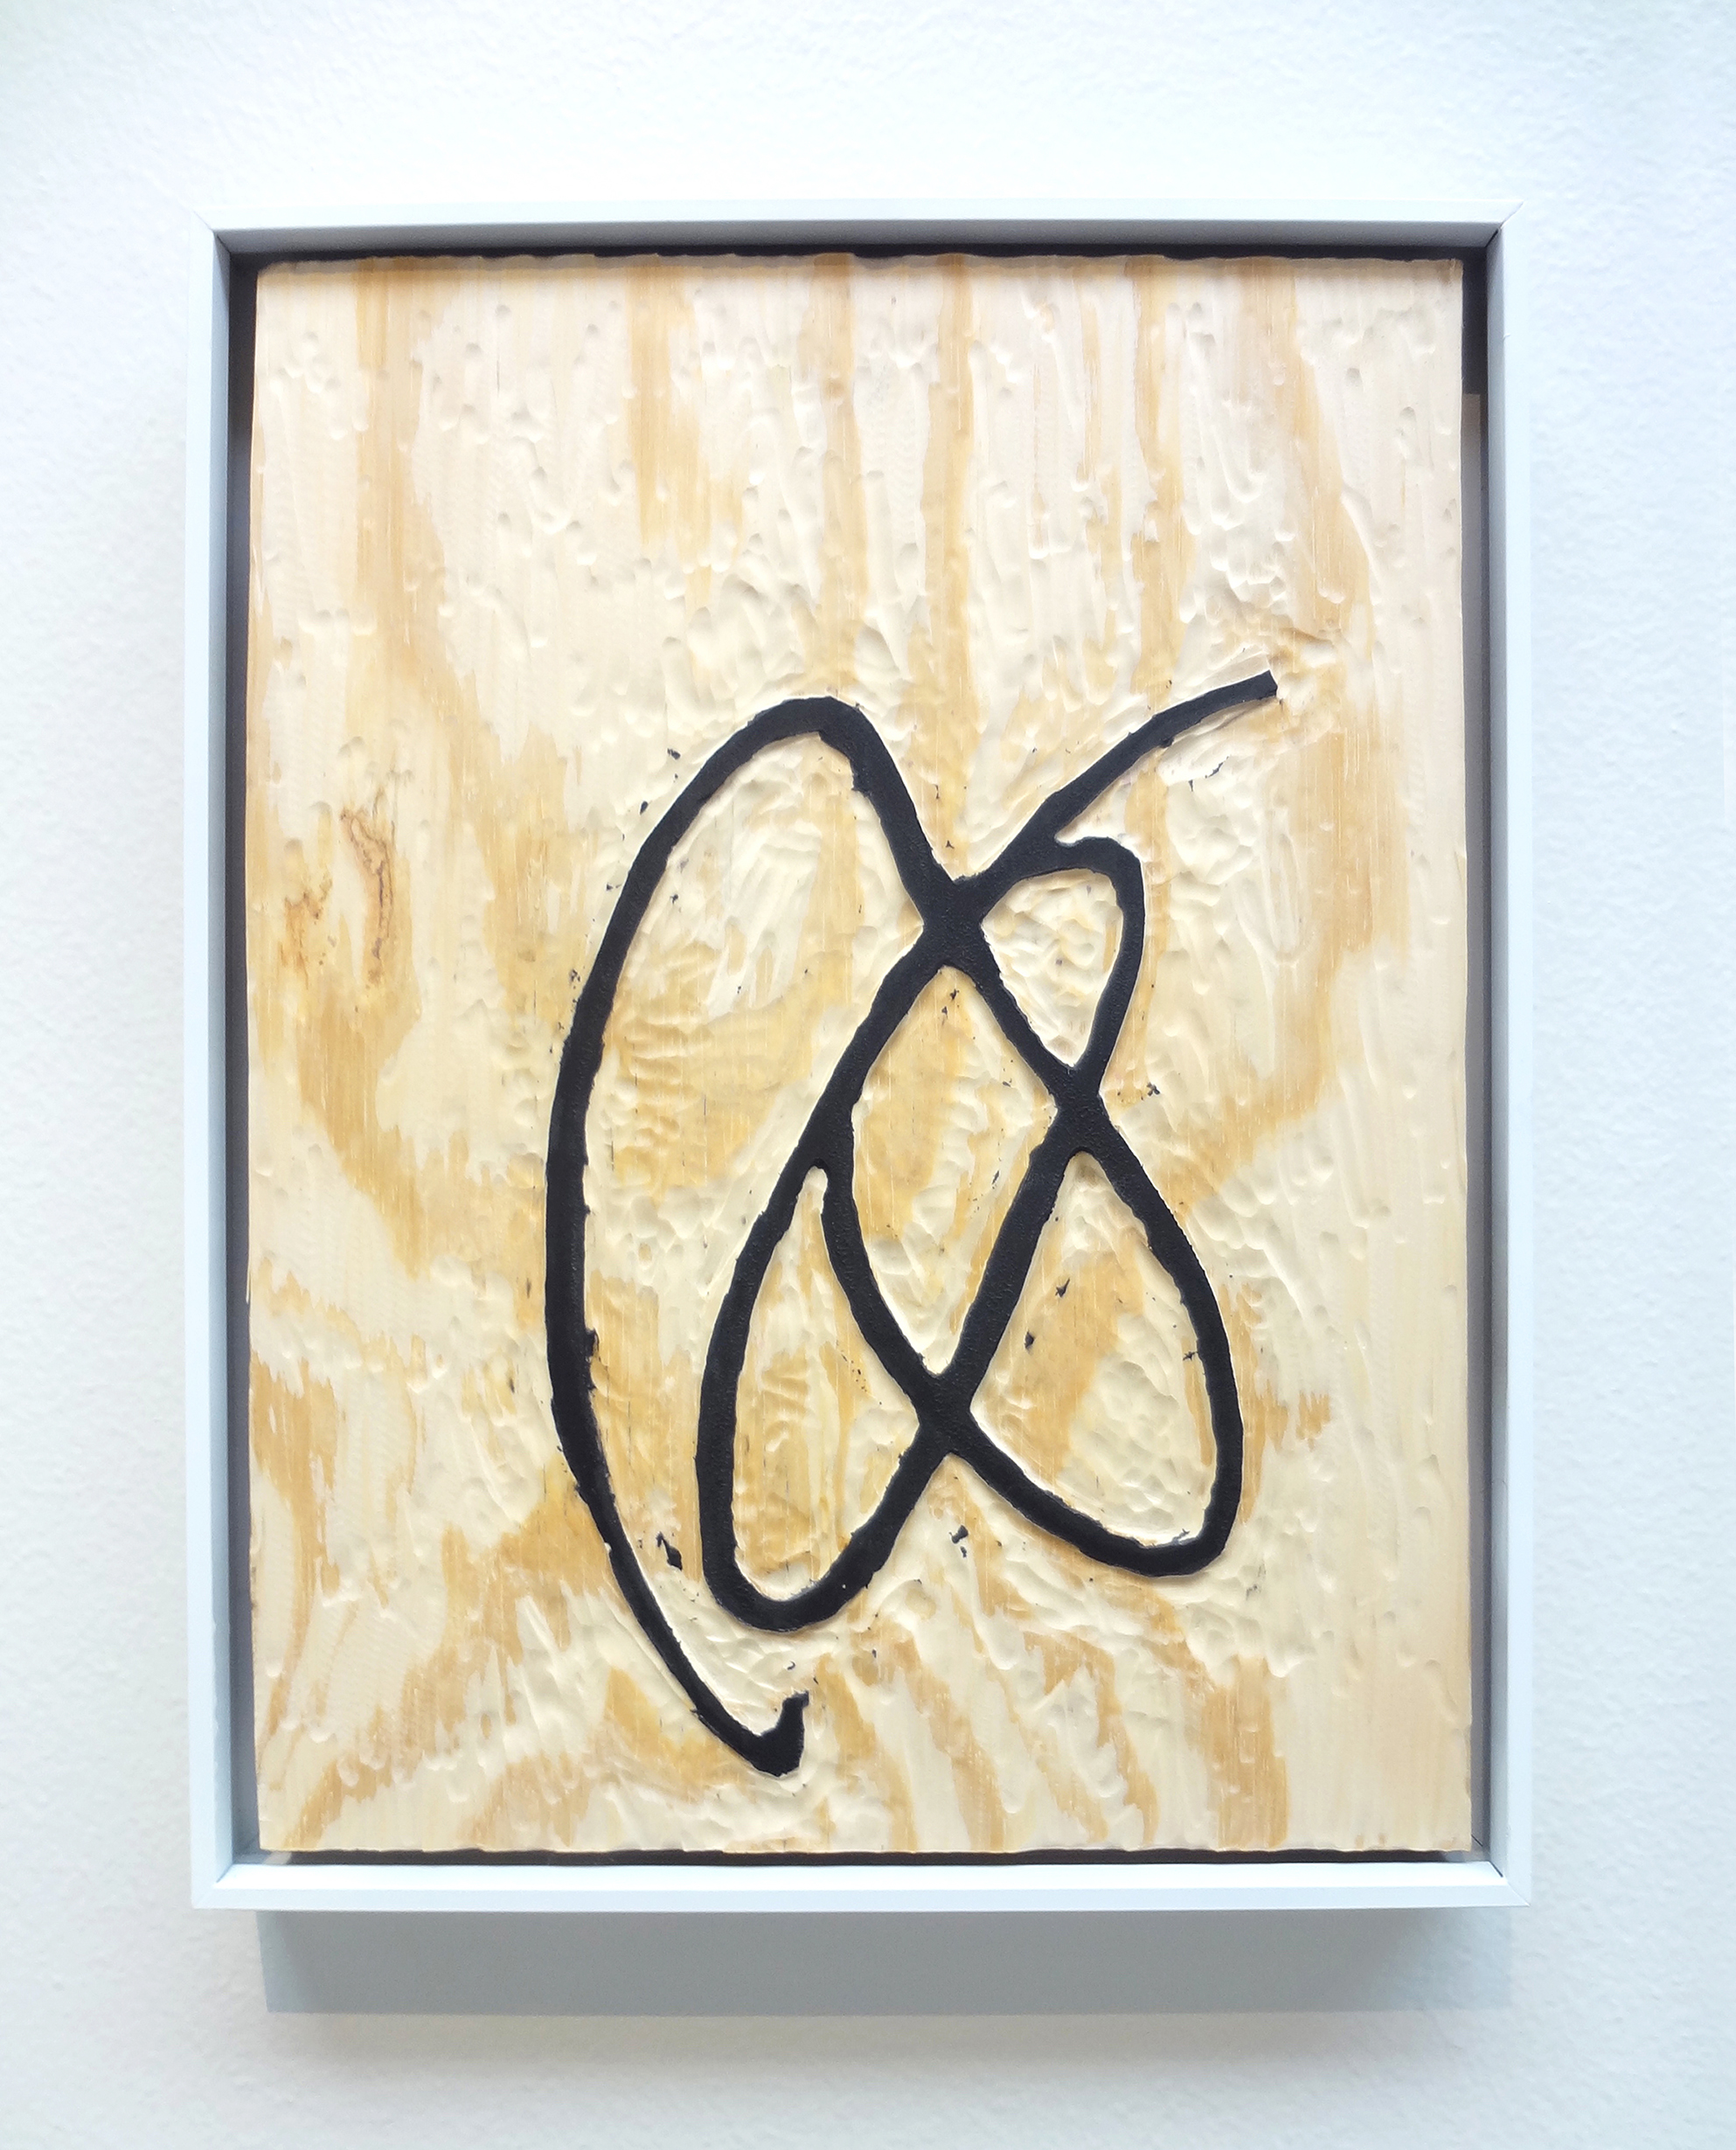 Meghan Gerety  Untitled 06 , 2015 blockprint ink on plywood 15 x 12 in.framed in aluminum